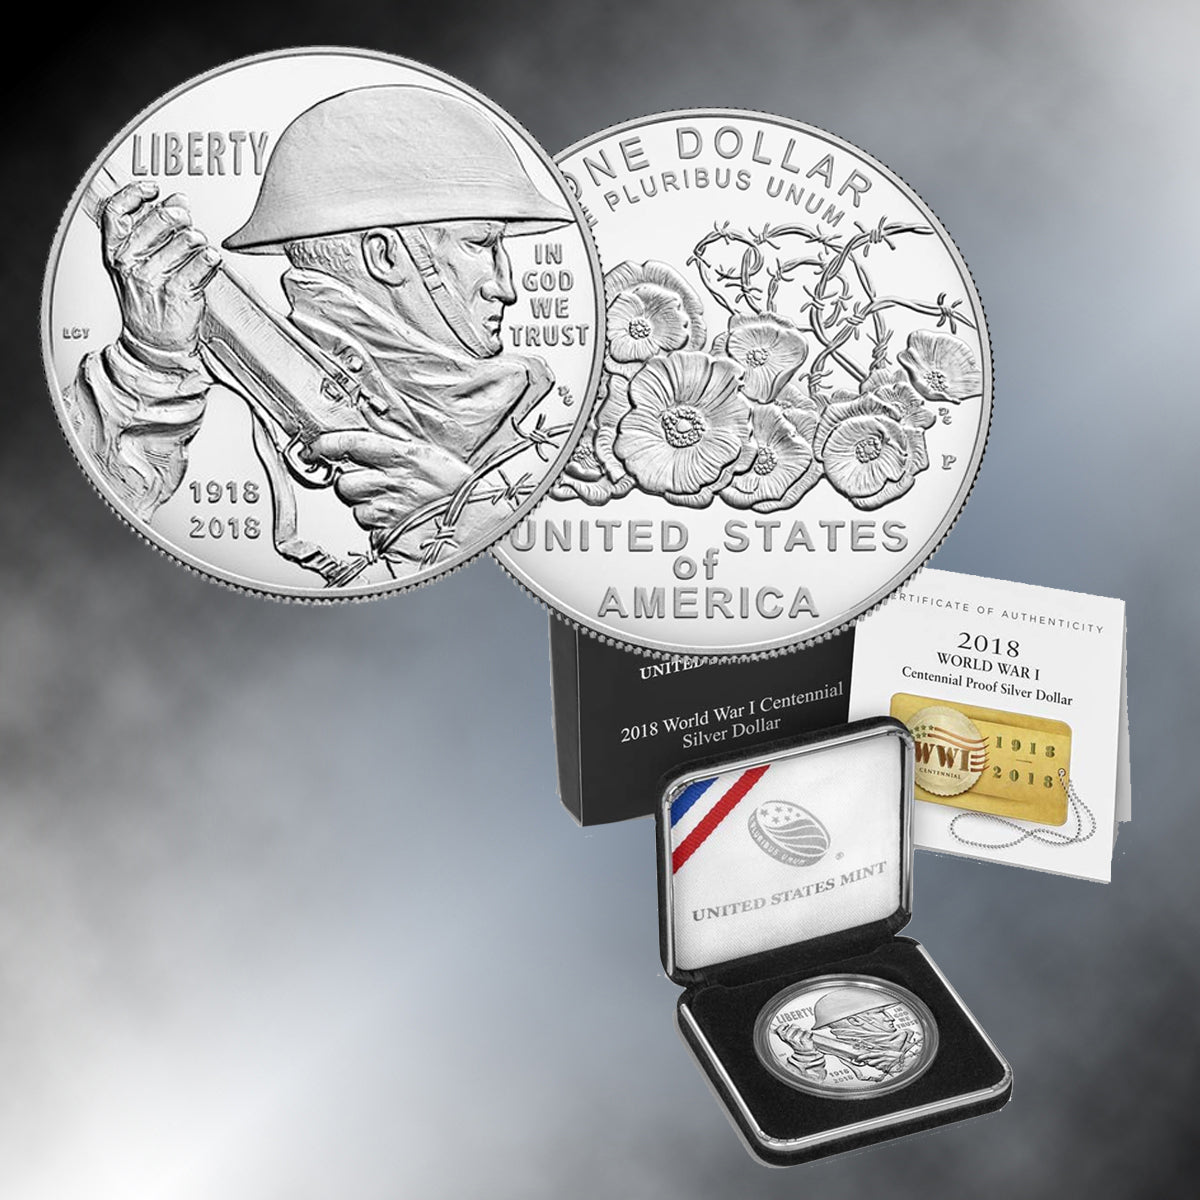 World War I Centennial 2018 Proof Silver Dollar